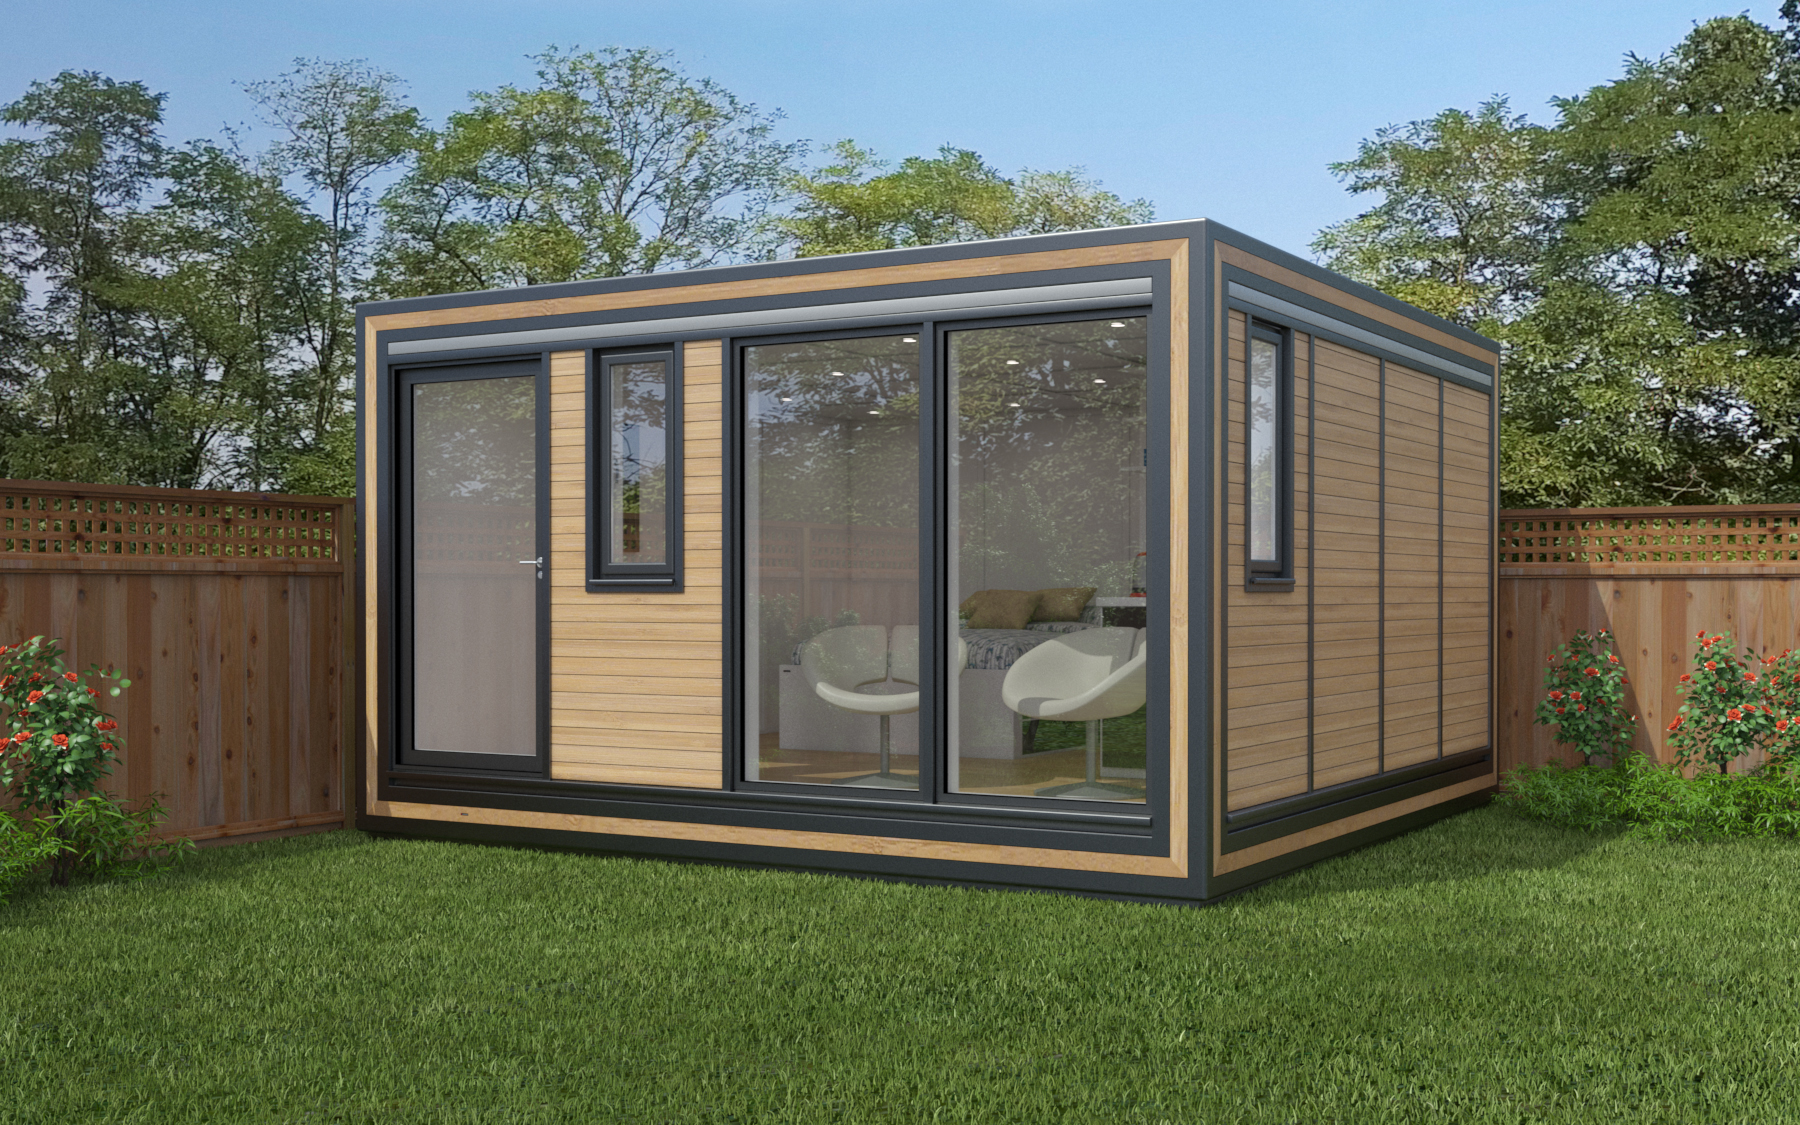 ZEDBOX 440  (4 x 4)  Internal Size: 4259 x 4259  External Size: 4279 x 4279  Bed Options: Single or Double  Kitchen Options: Micro or Premier  Wet Room Options: Yes  Portico: No  Price:  £32,000    Optional Extras    Request Zedbox Catalogue